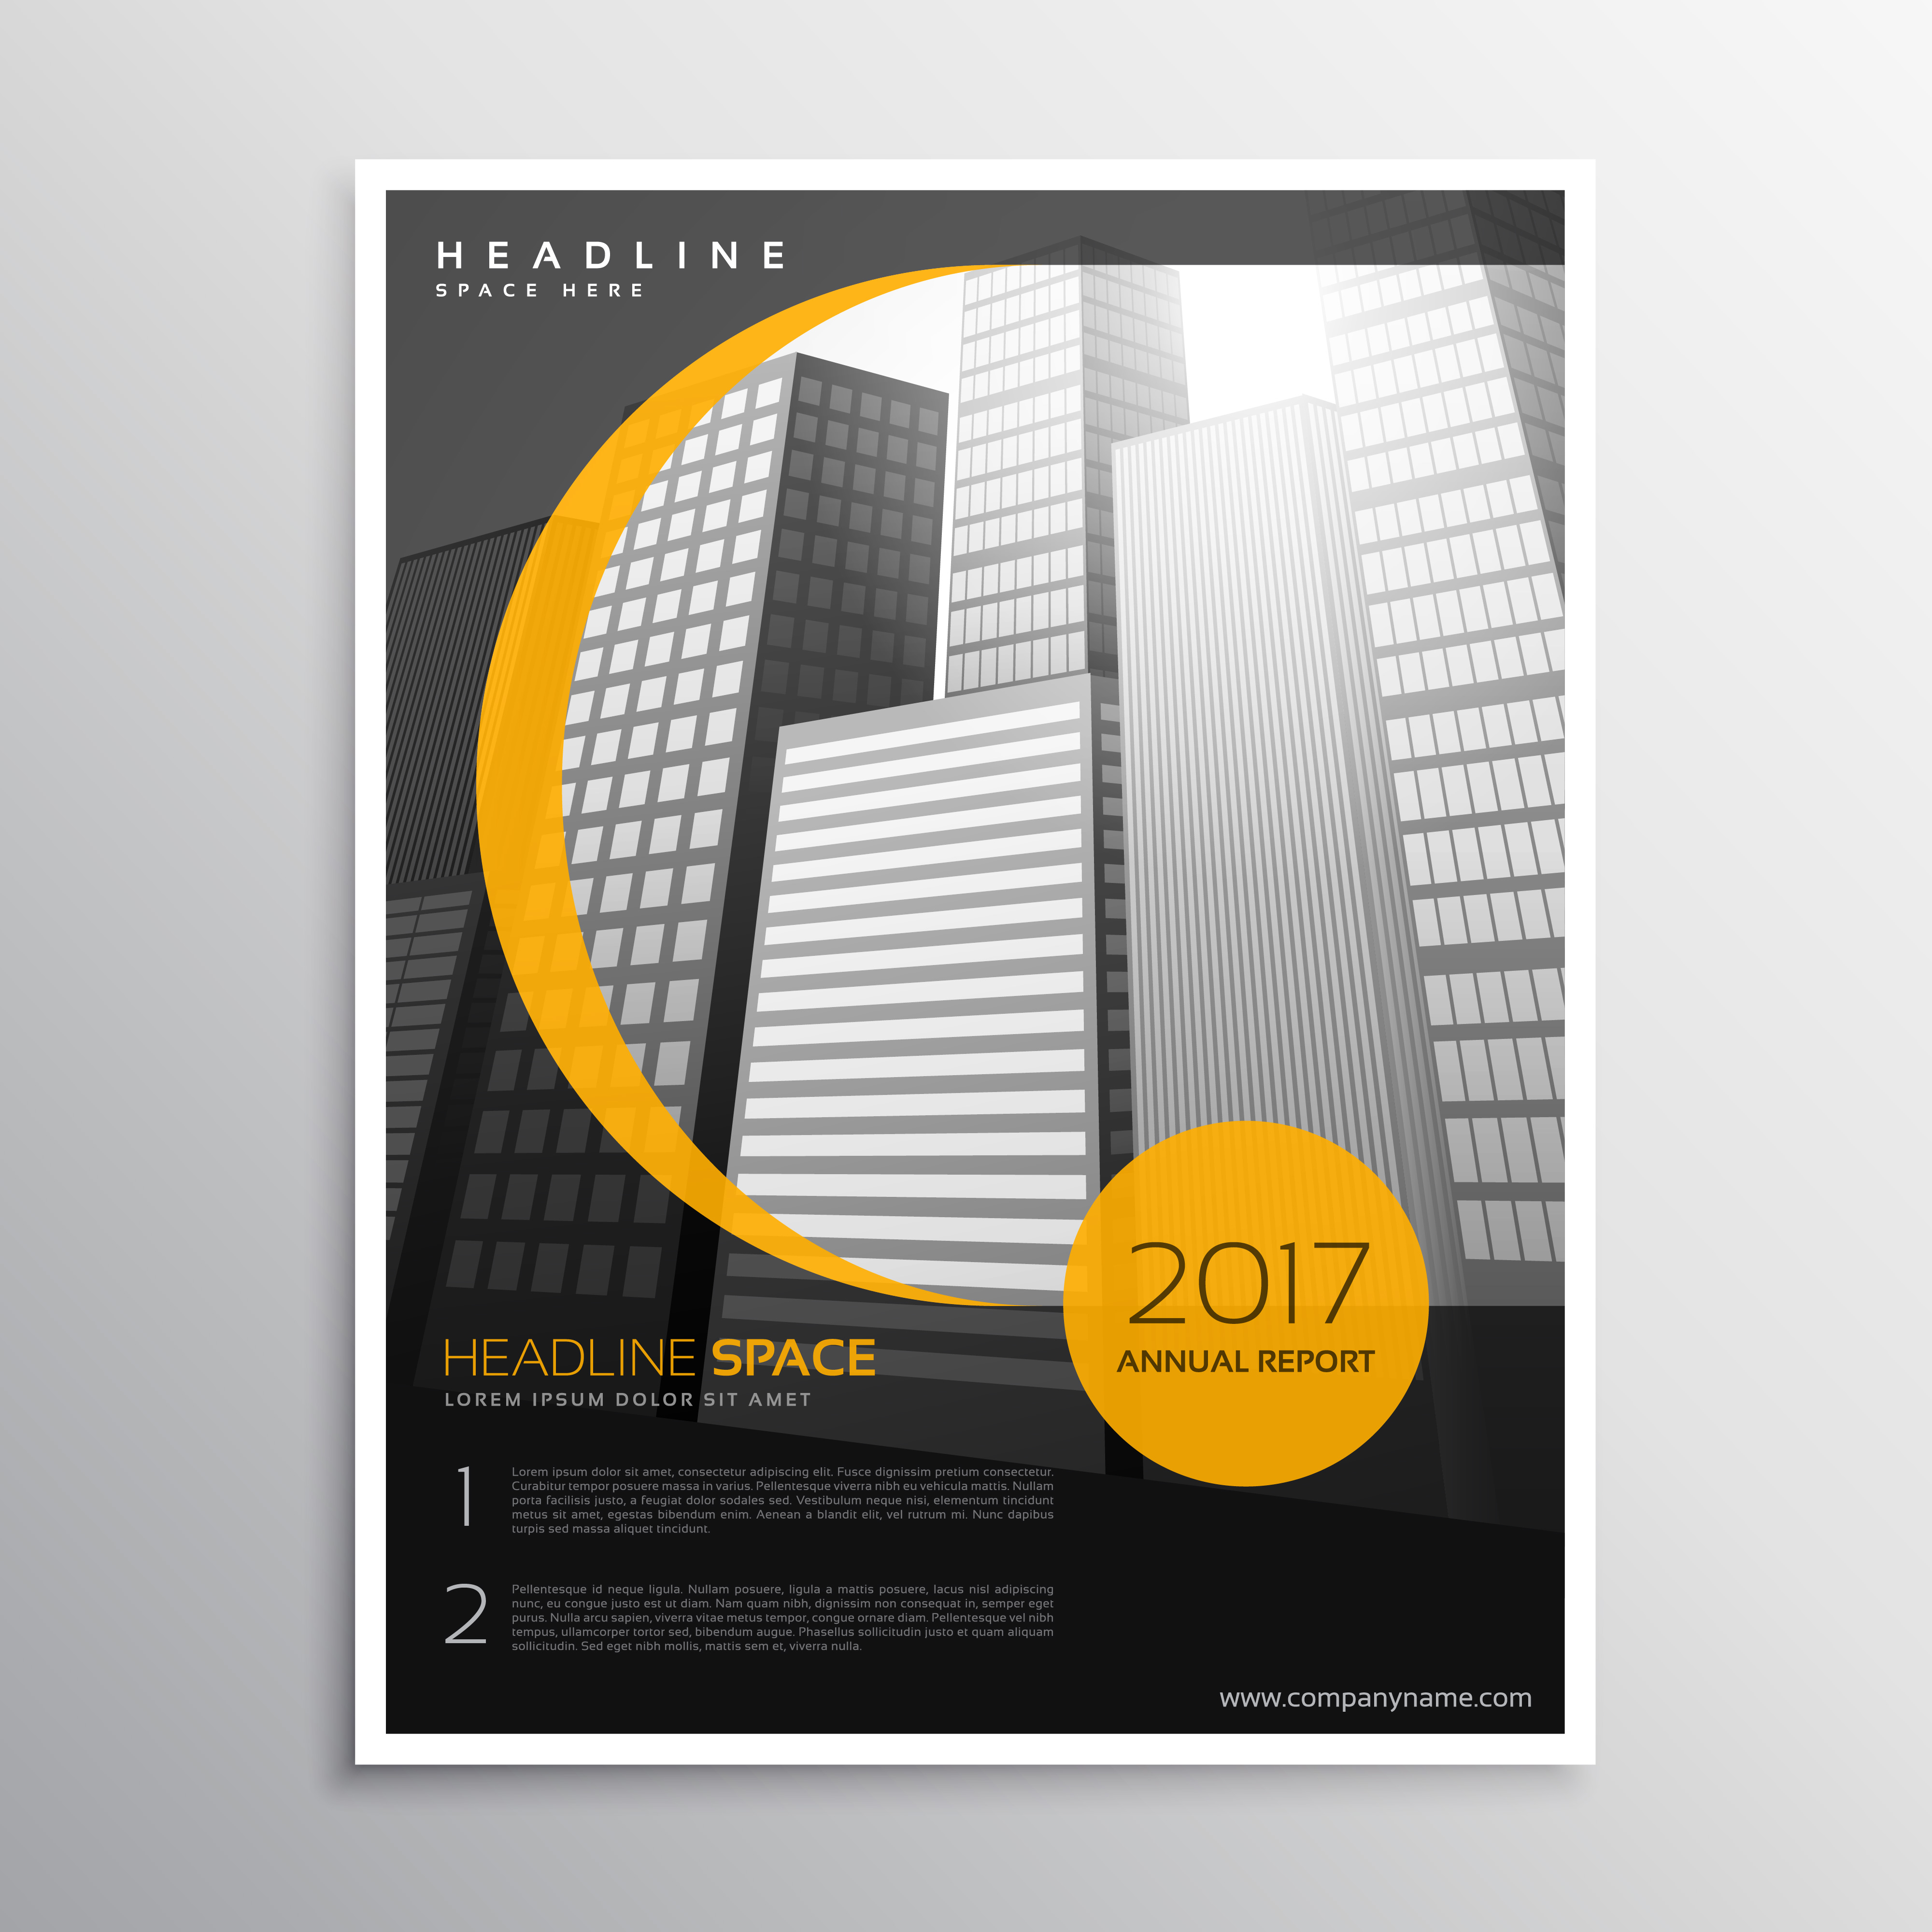 Art Calendar Business Magazine : Business magazine cover template design download free